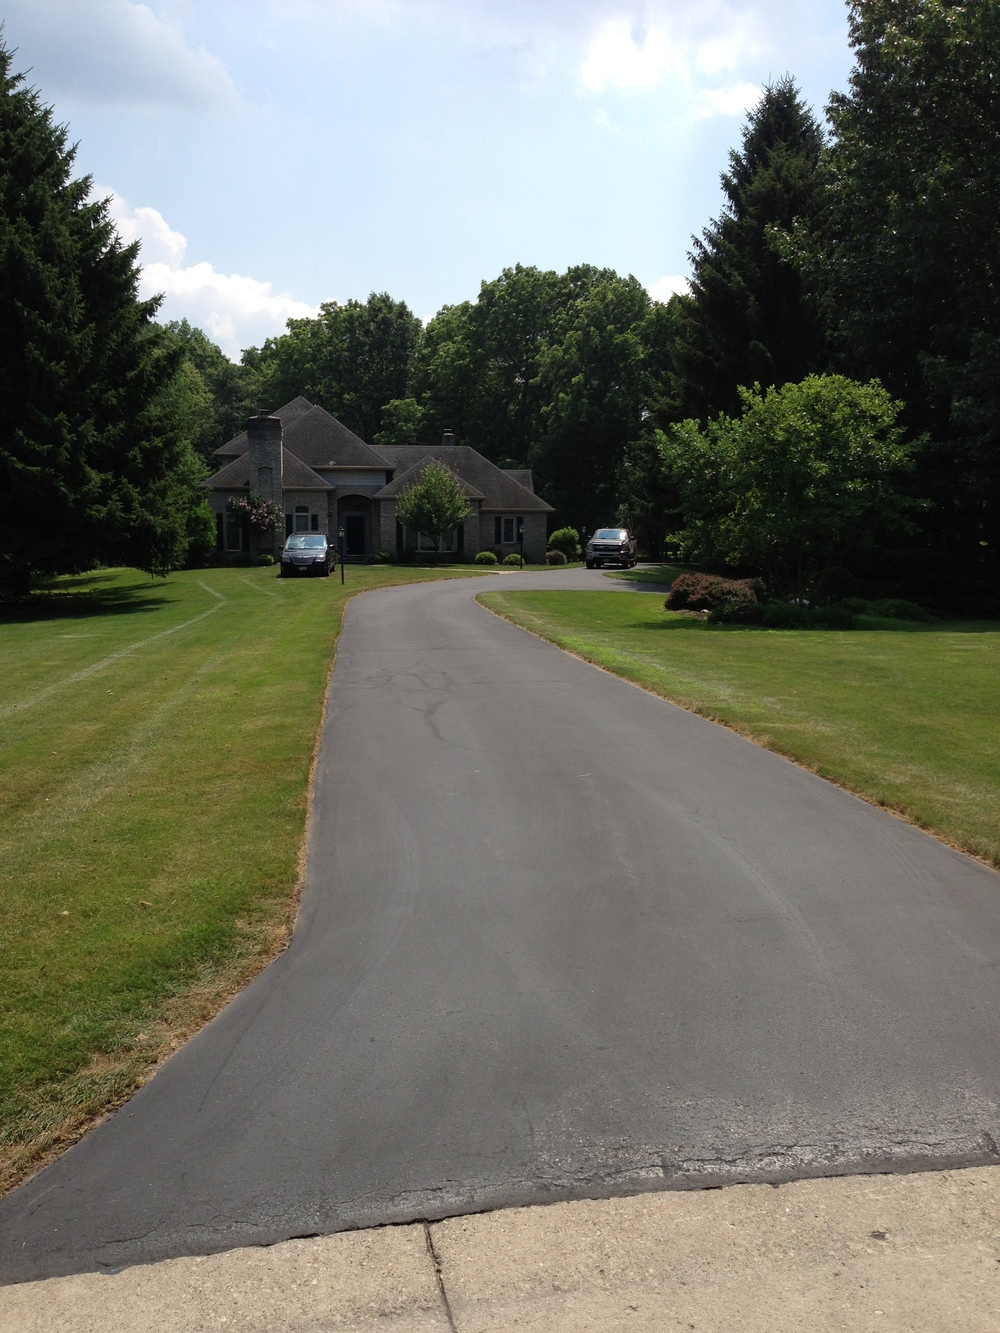 Southern Tier Sealcoating provides Commerical and Residential customers with eco-friendly asphalt sealing services. We provide crack repairs, asphalt repair, power blowing, sweeping and edging.